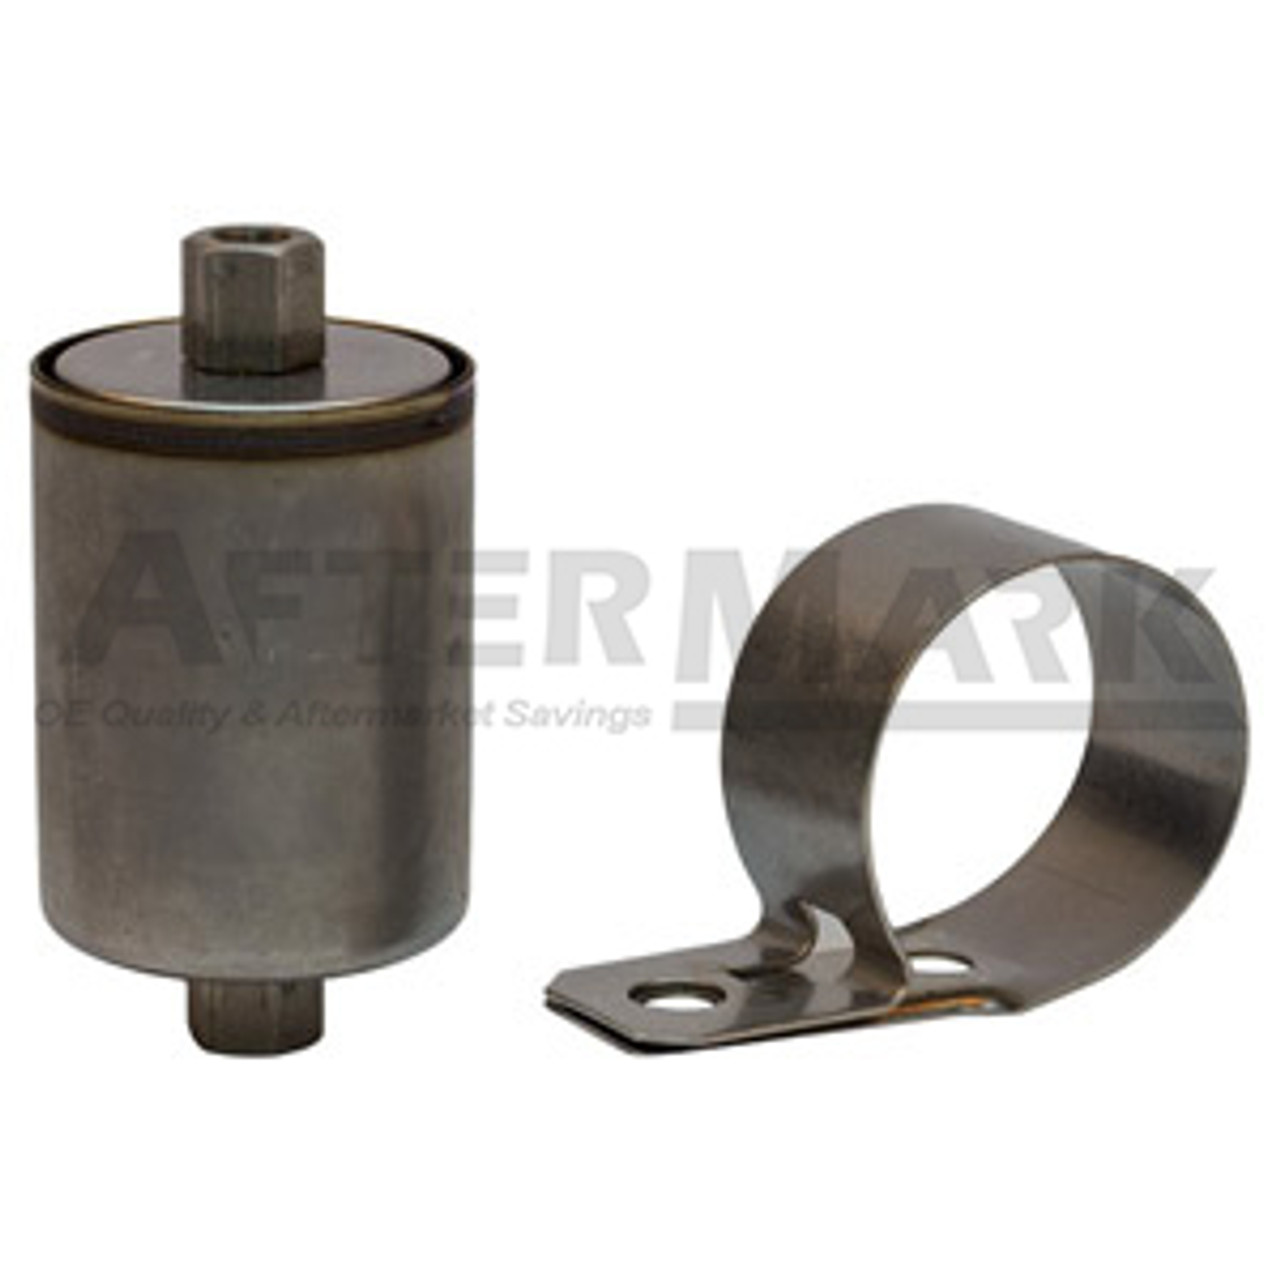 king fuel filter a 13 864 fuel filter for thermo king thermo king fuel filter a 13 864 fuel filter for thermo king